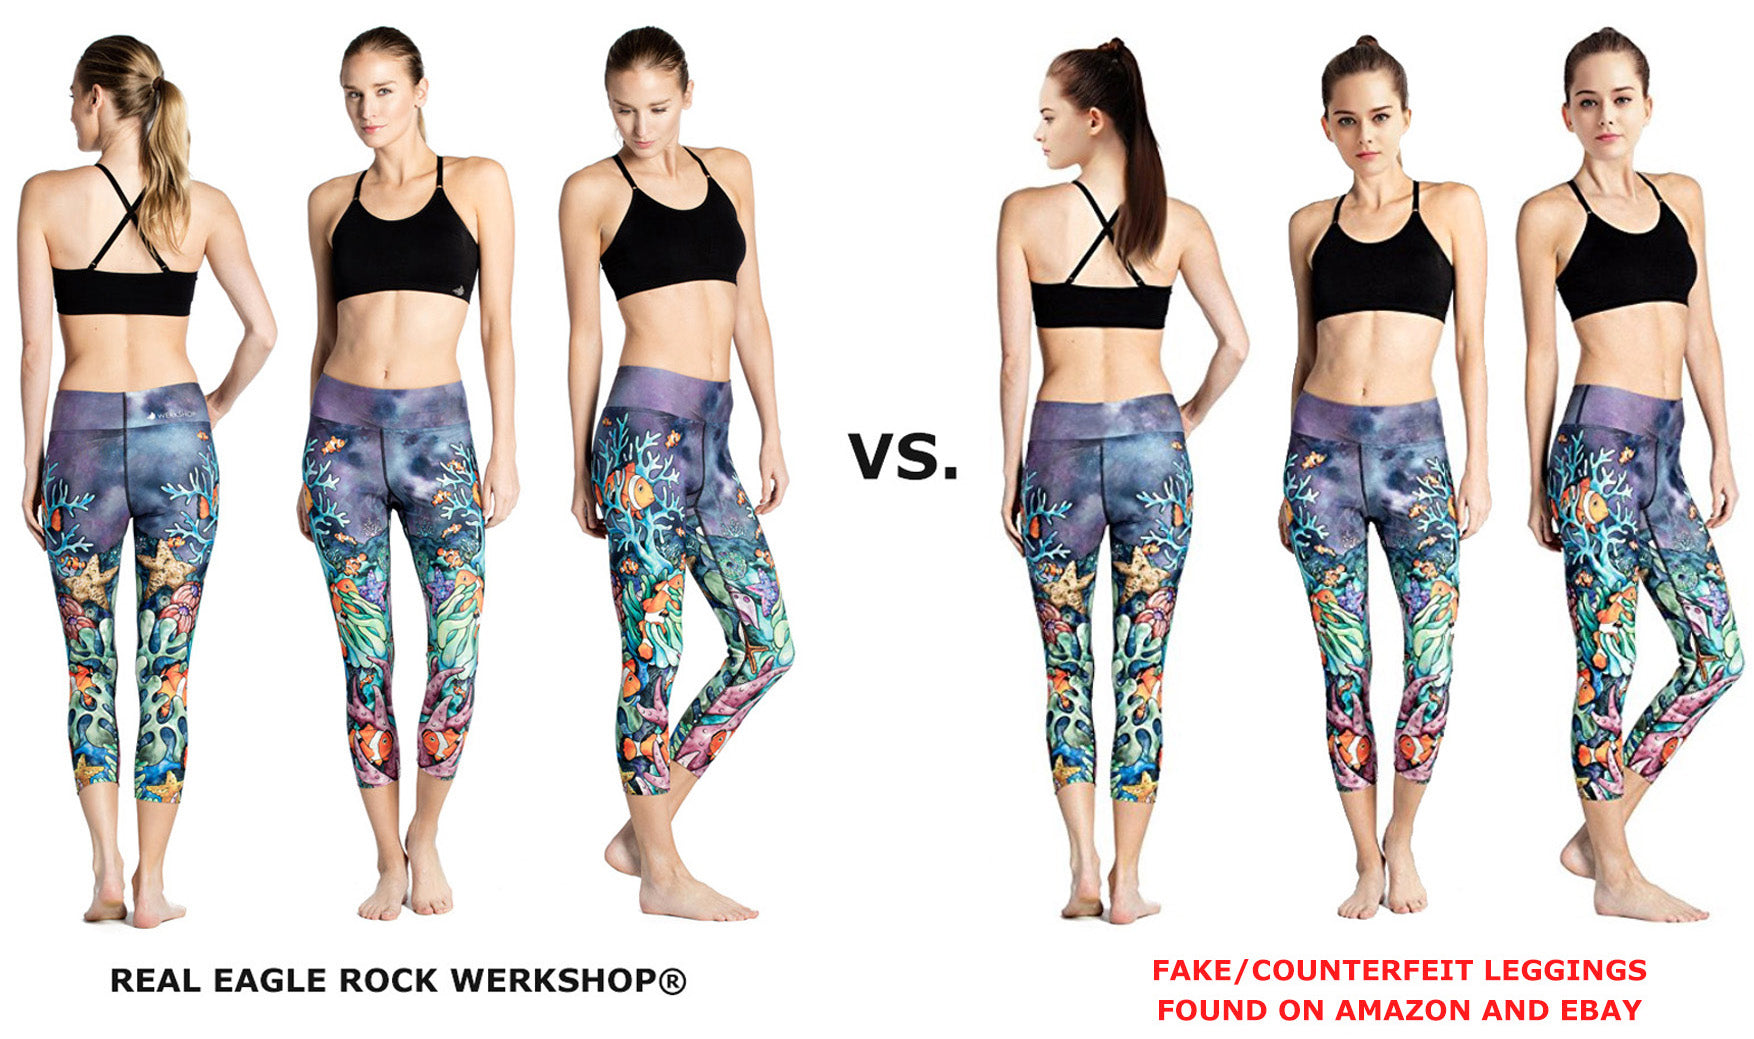 3e1a26a8dc73d All listings (whether they use my webshop/product images or not) are fake.  Here is an example of fake WERKSHOP leggings that we found on Amazon: